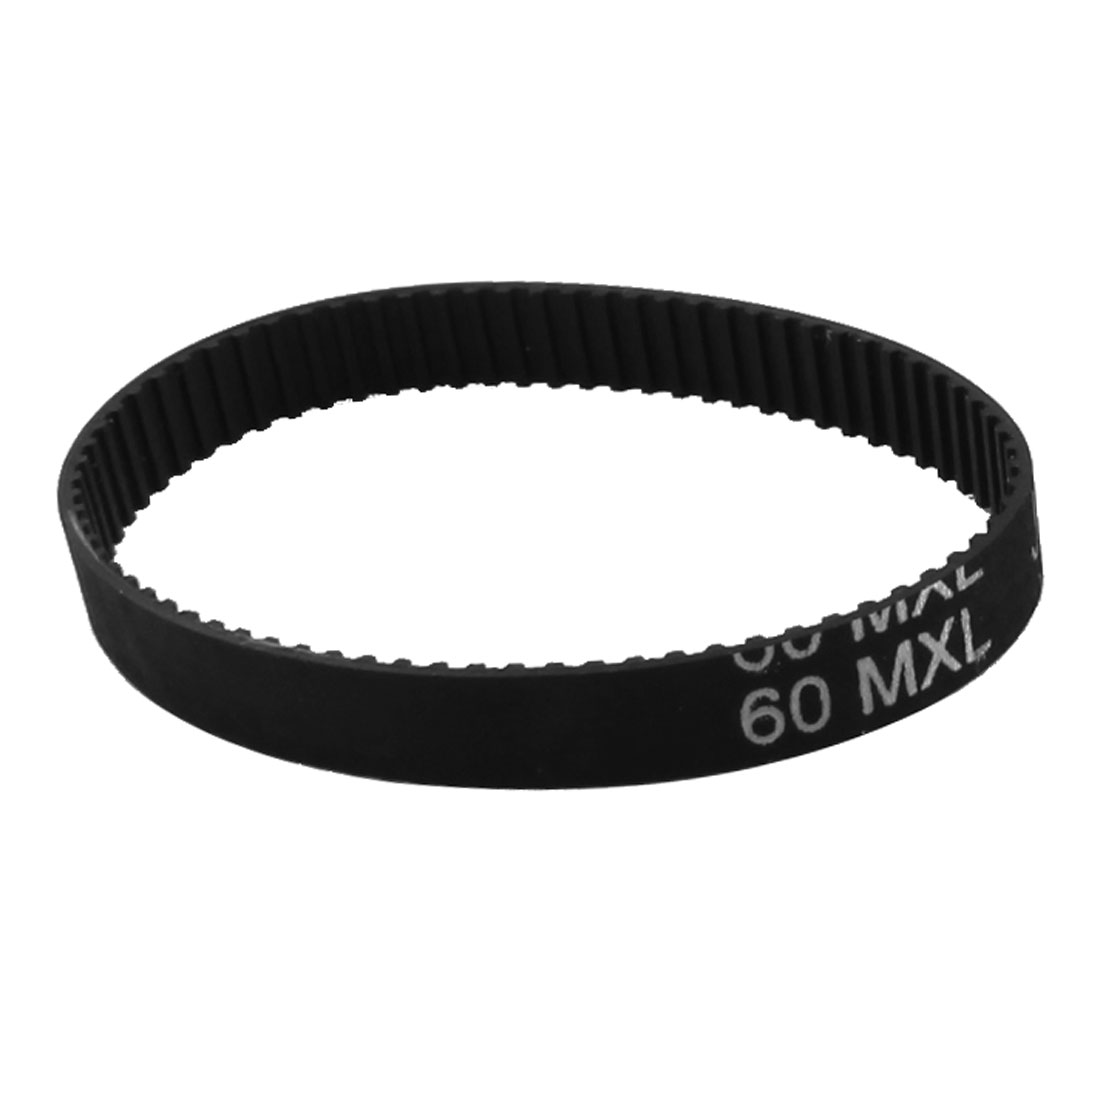 60MXL025 75 Teeth 6.4mm Width Black Industrial Stepper Motor 3D Printer Groove Cogged Synchronous Timing Belt 152.4mm